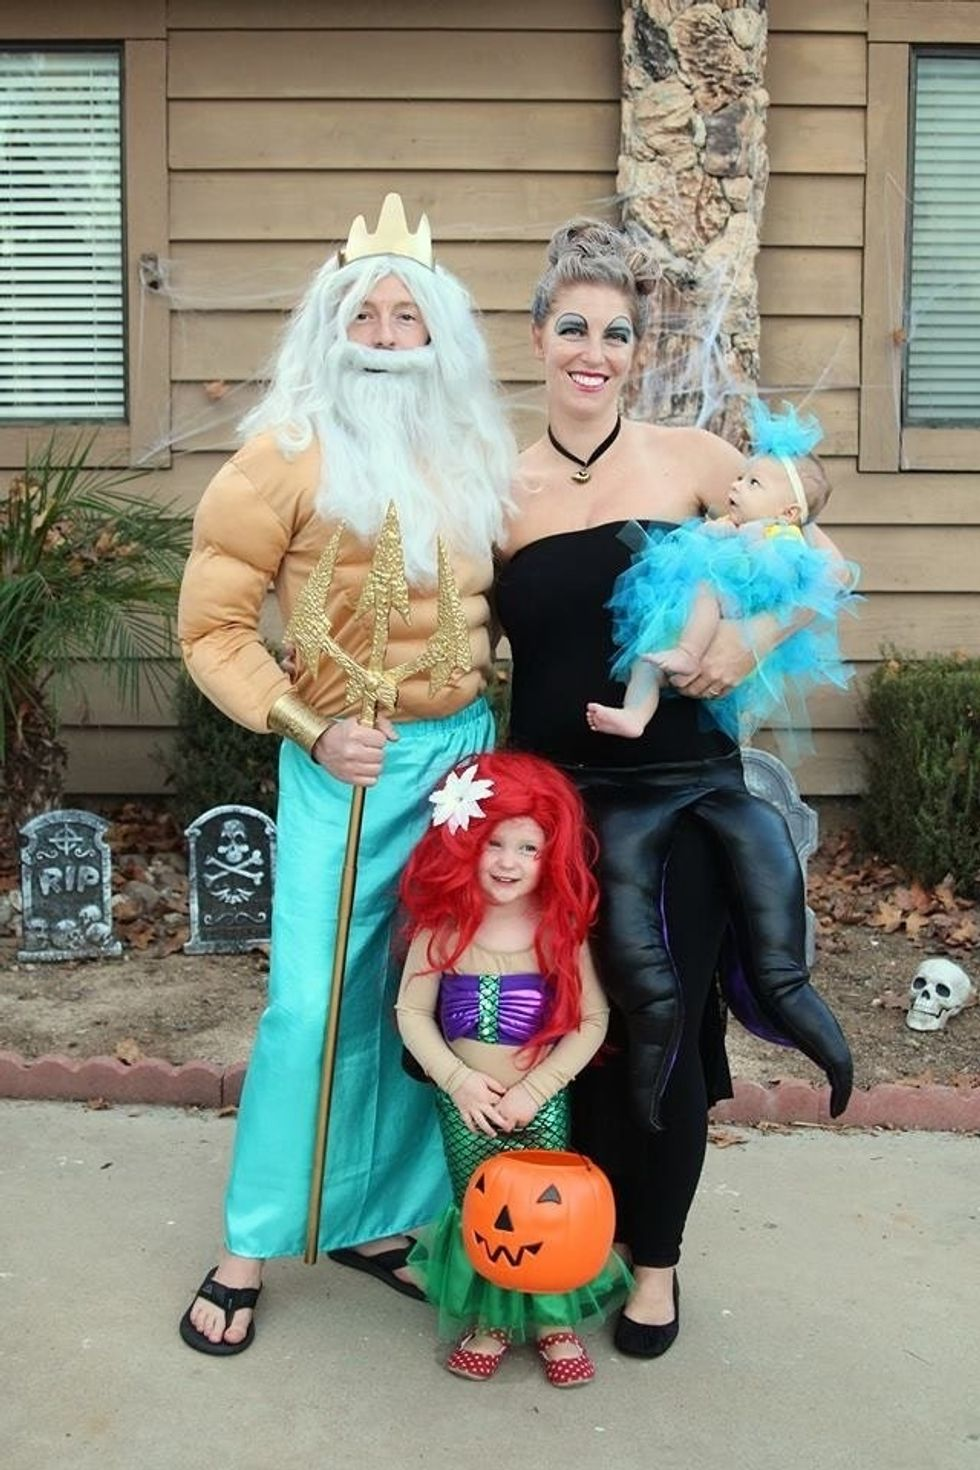 Halloween Costumes For Family Of 3 And Pregnant.40 Family Halloween Costume Ideas Everyone Will Love Motherly